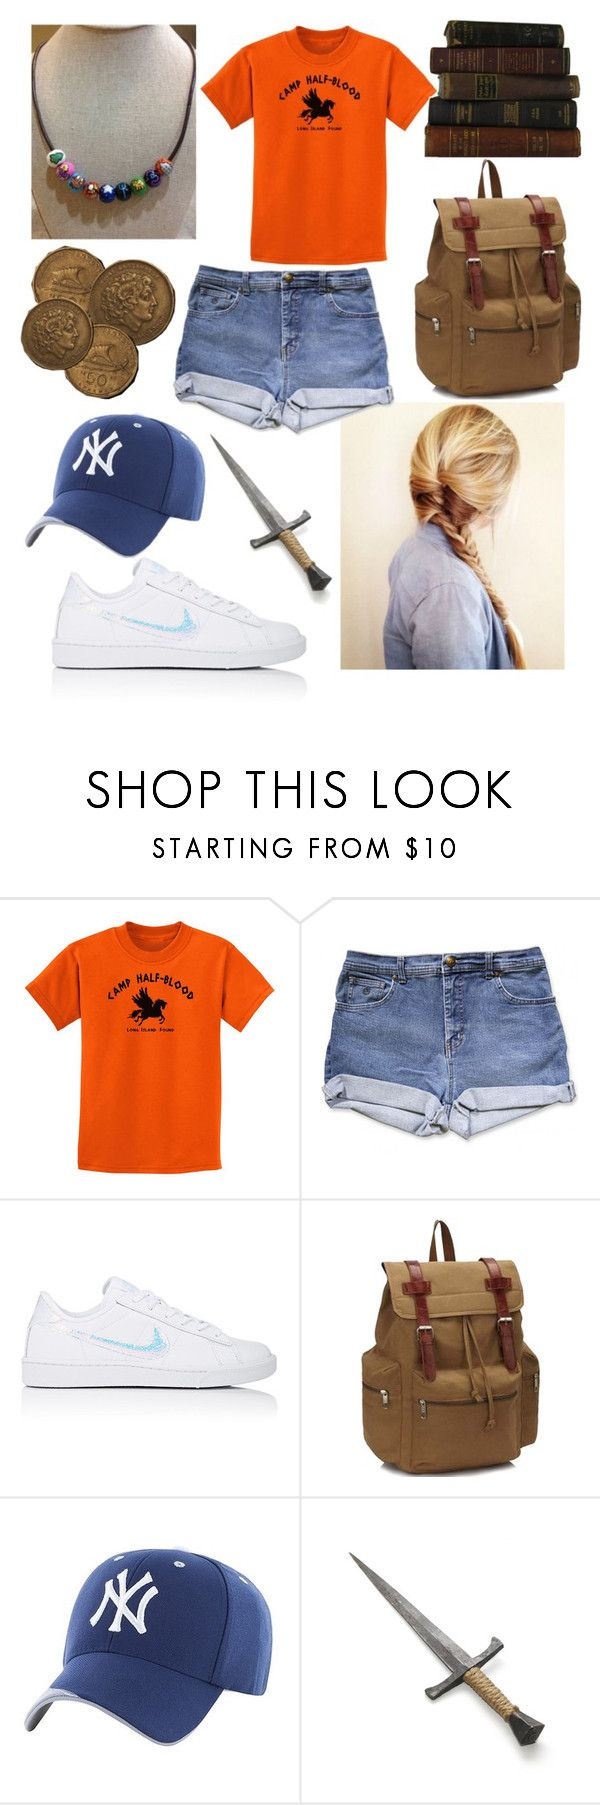 """Annabeth Chase"" by jaydenblue2021 ❤ liked on Polyvore featuring NIKE"